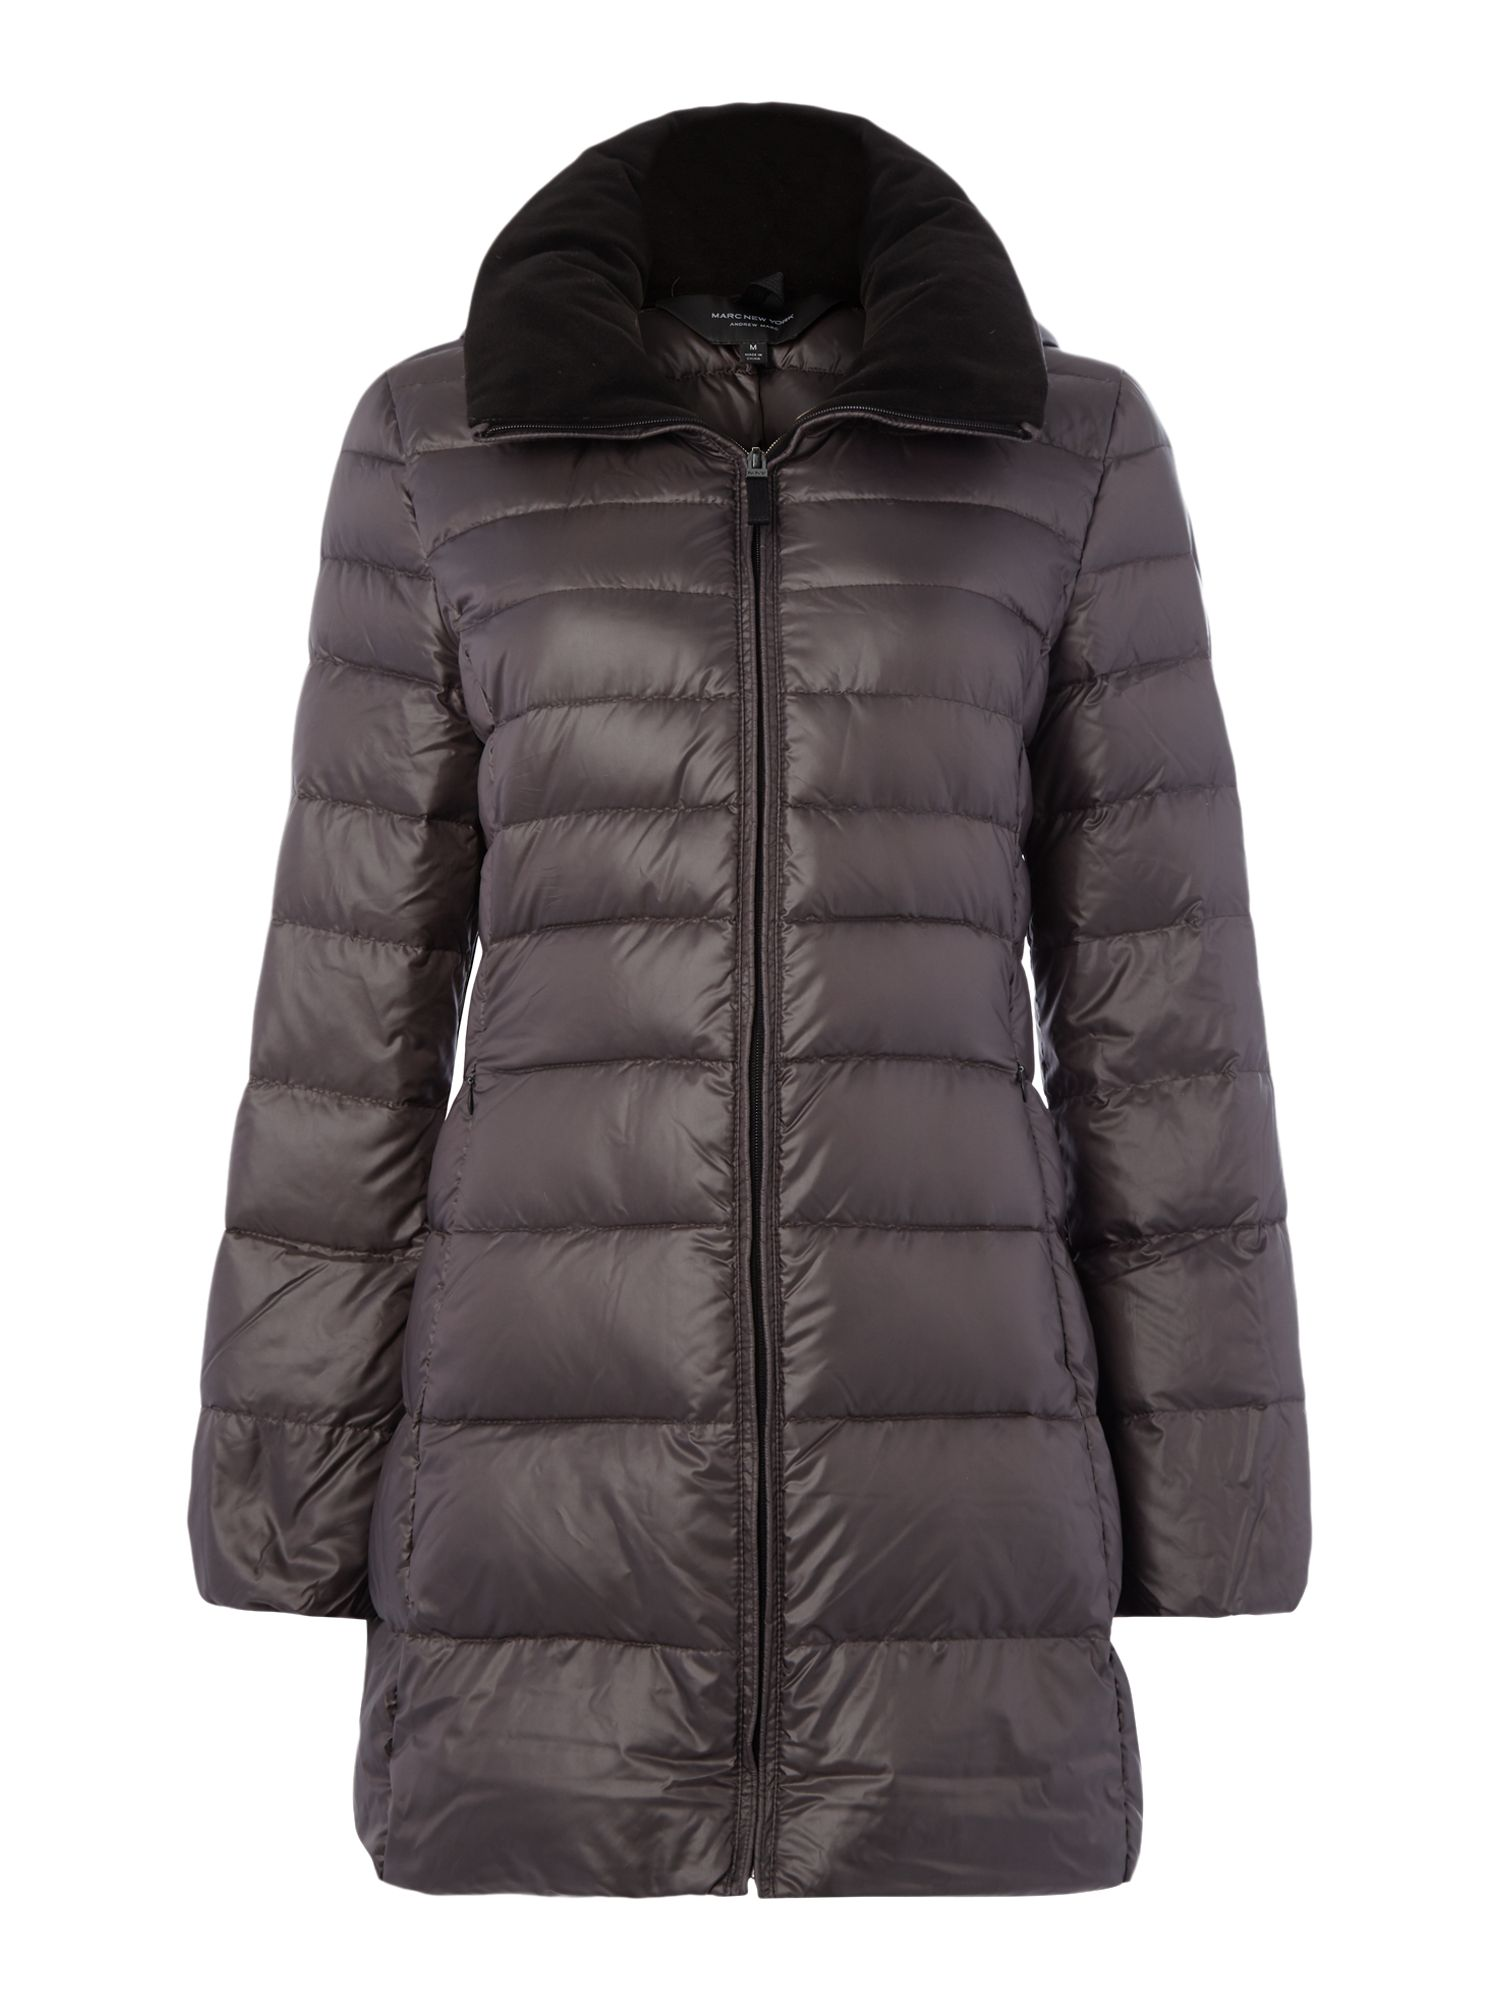 Andrew Marc Padded Style Coat With Hood, Grey